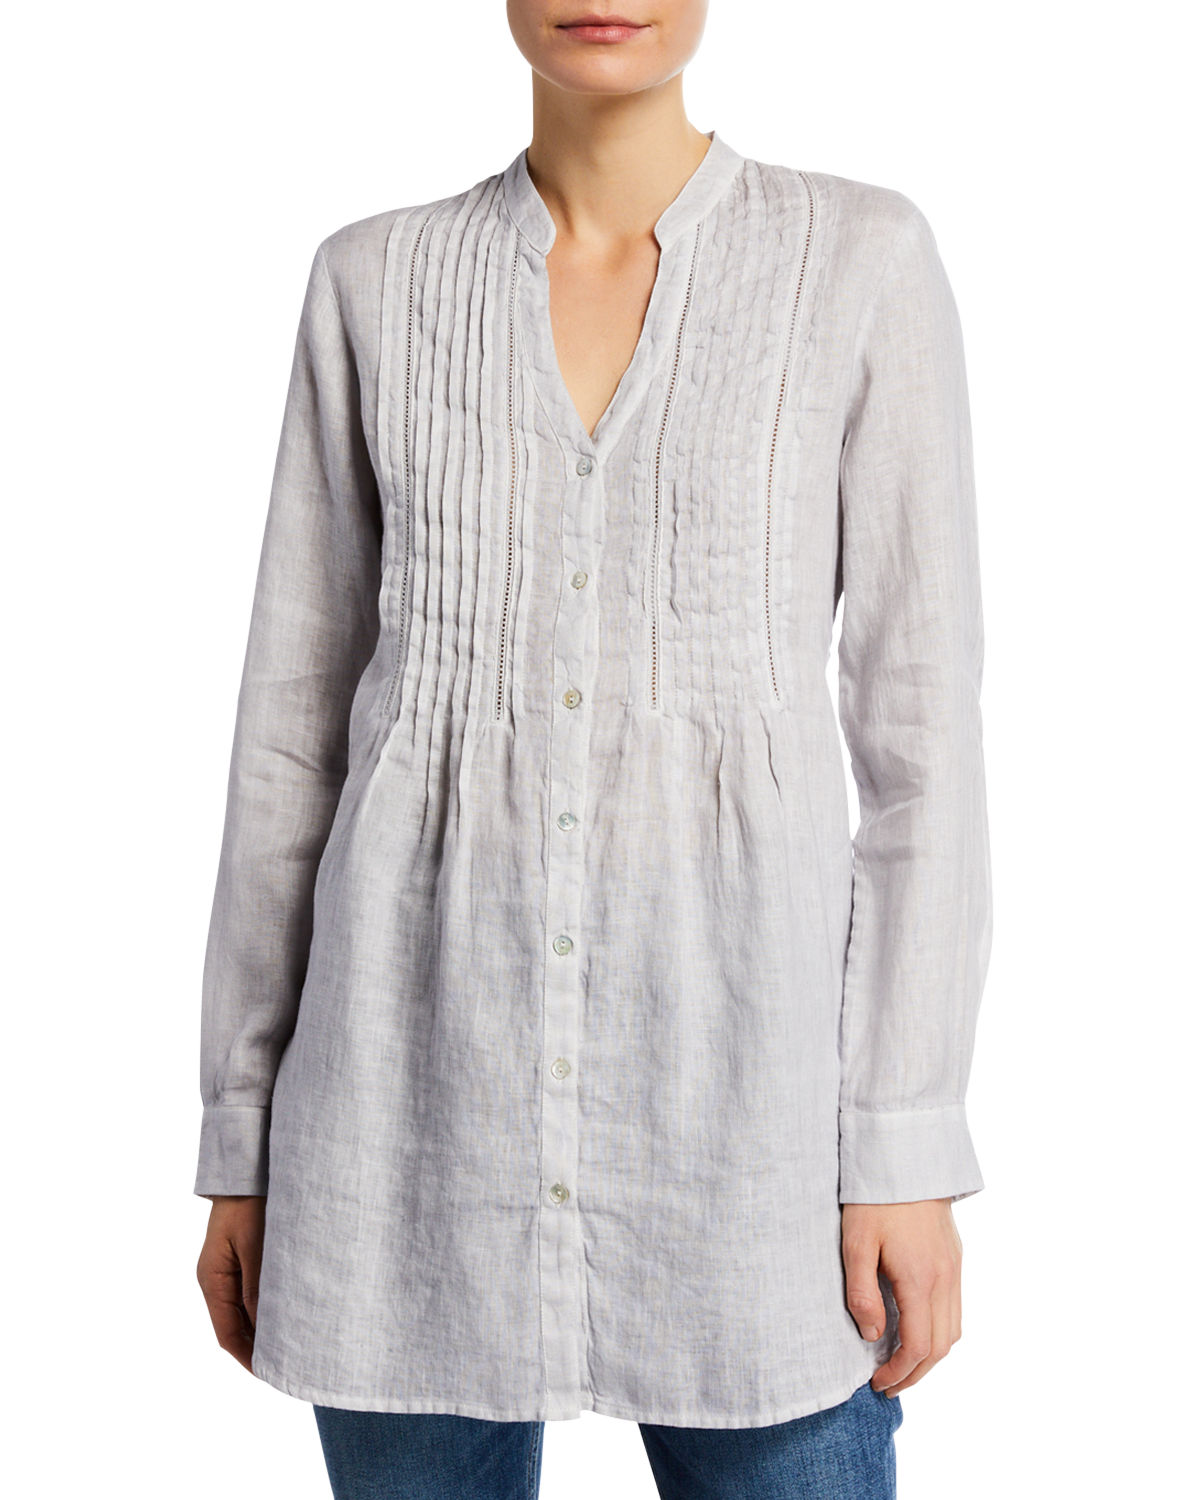 8faff7afe6e 120% Lino Band-Collar Pintucked Button-Front Long-Sleeve Linen Blouse In